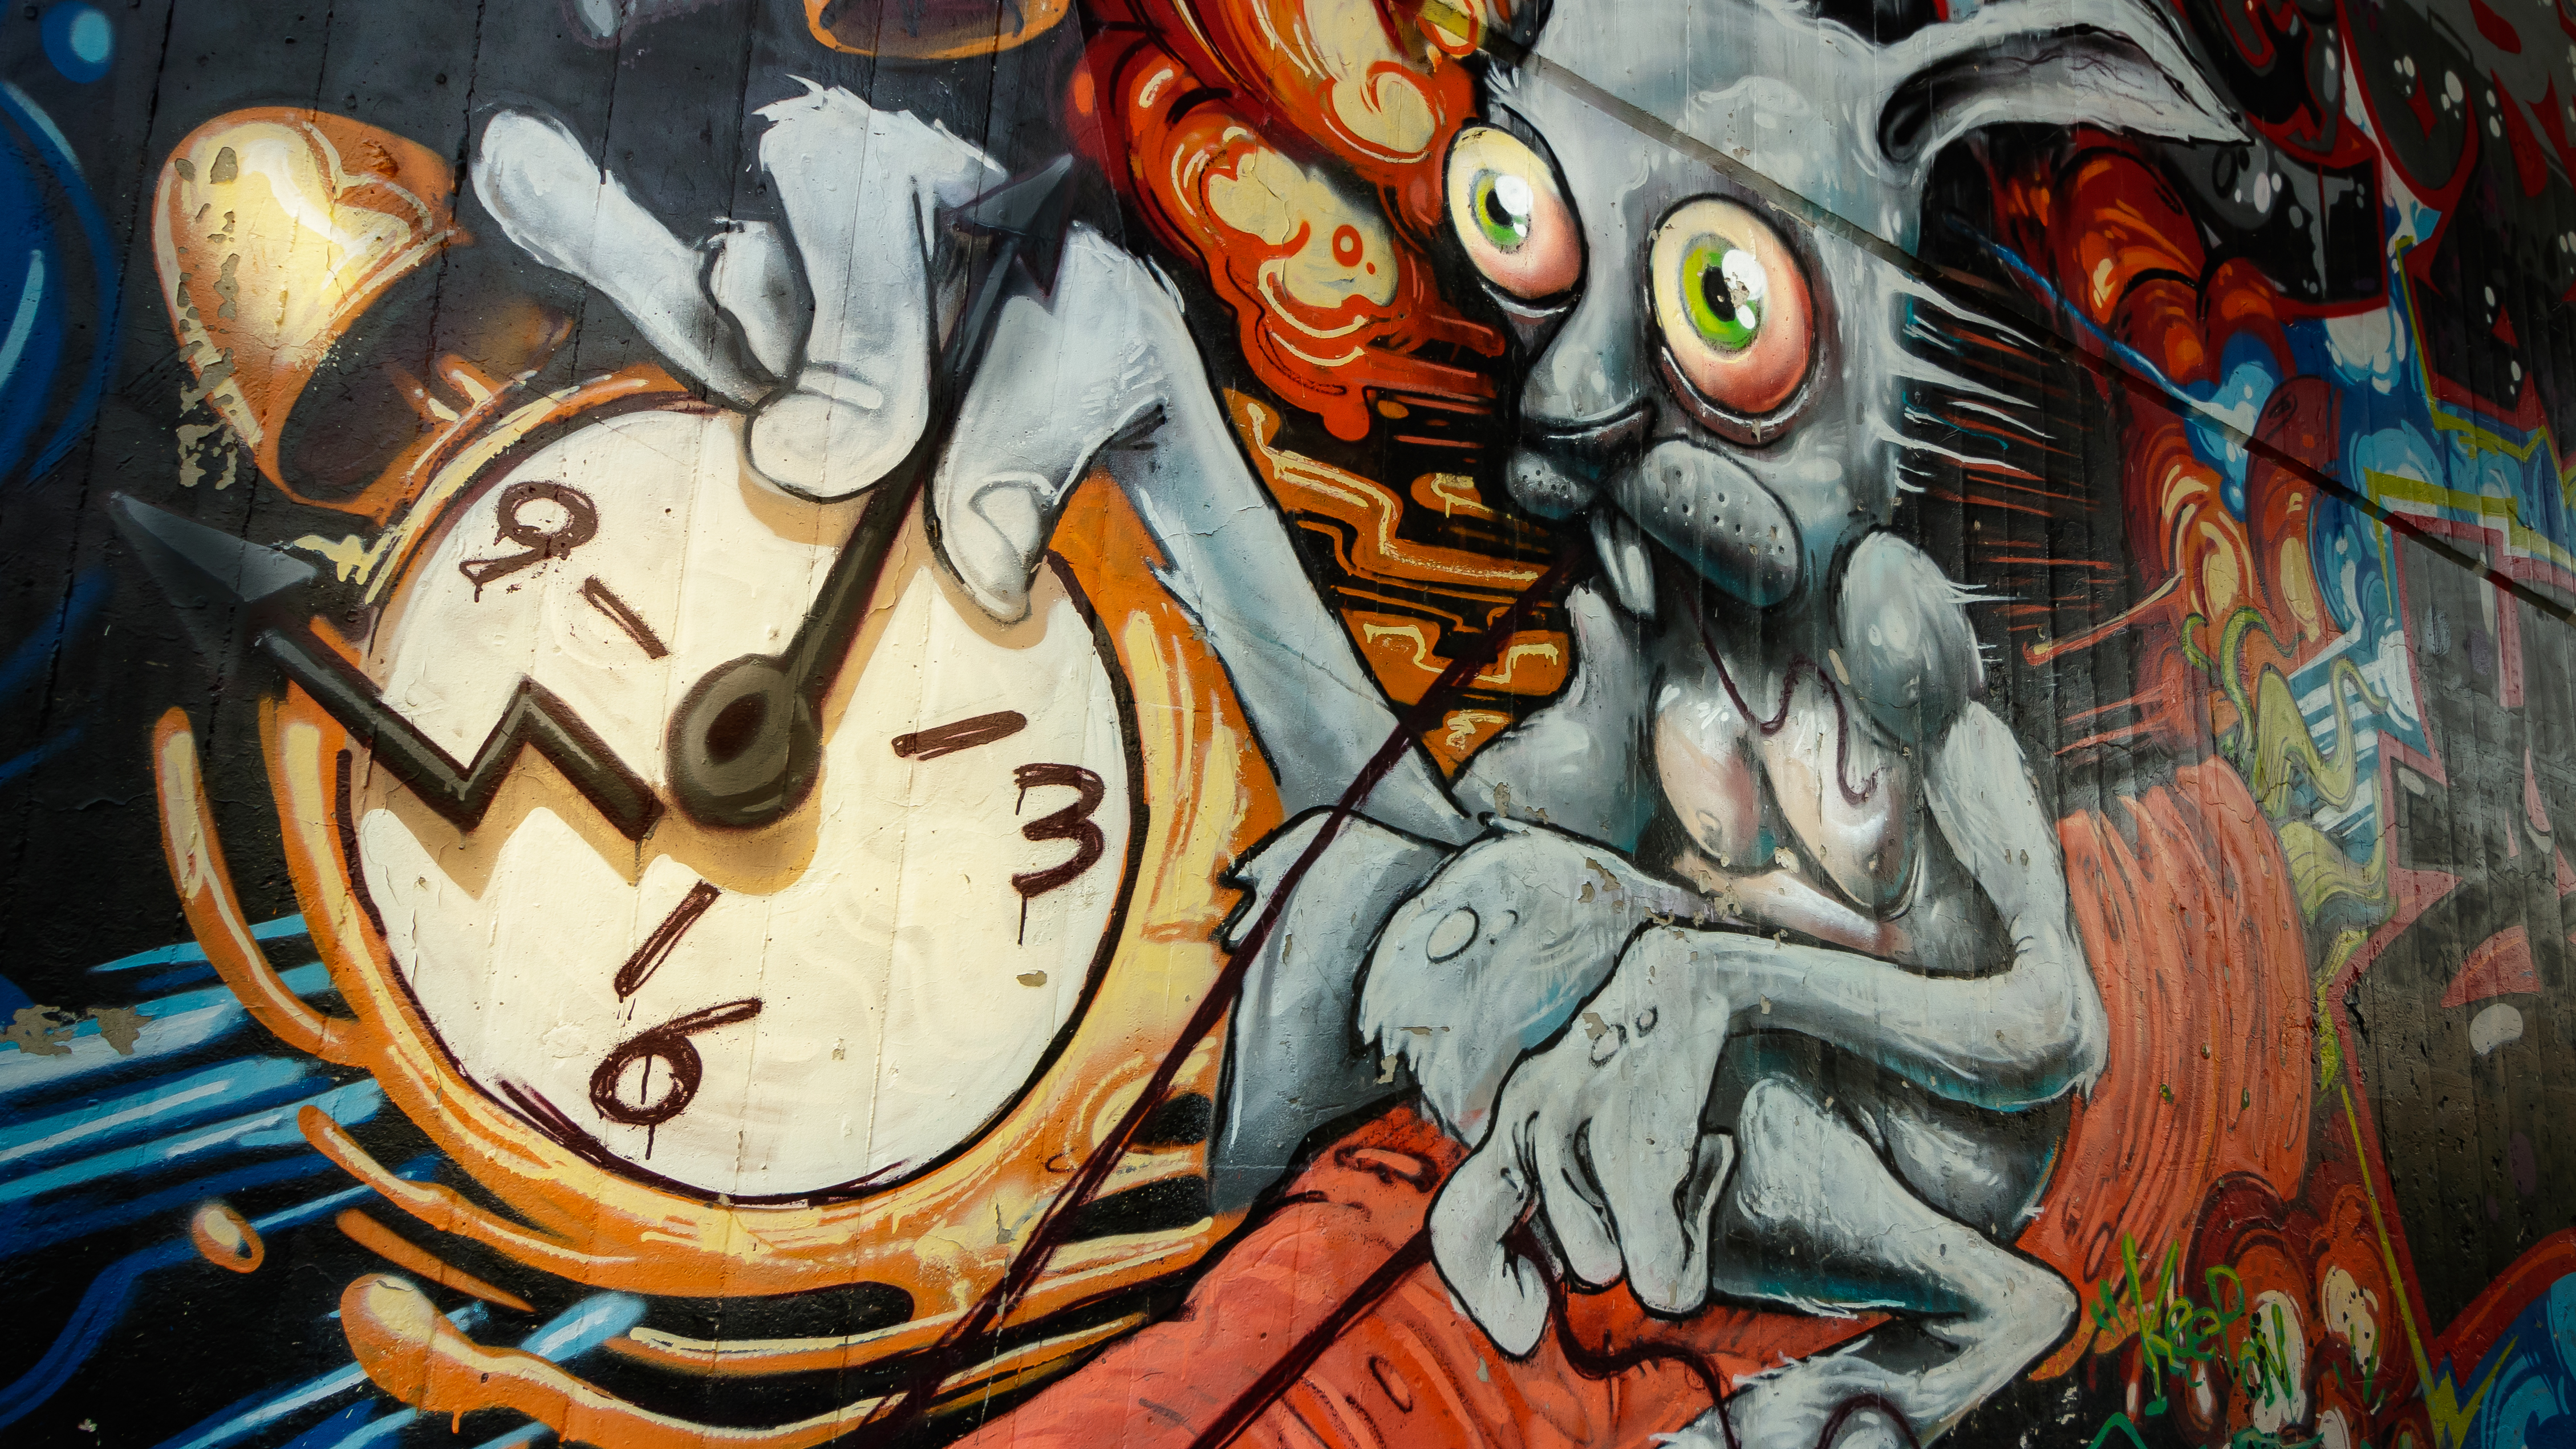 Alice in wonderland Graffiti